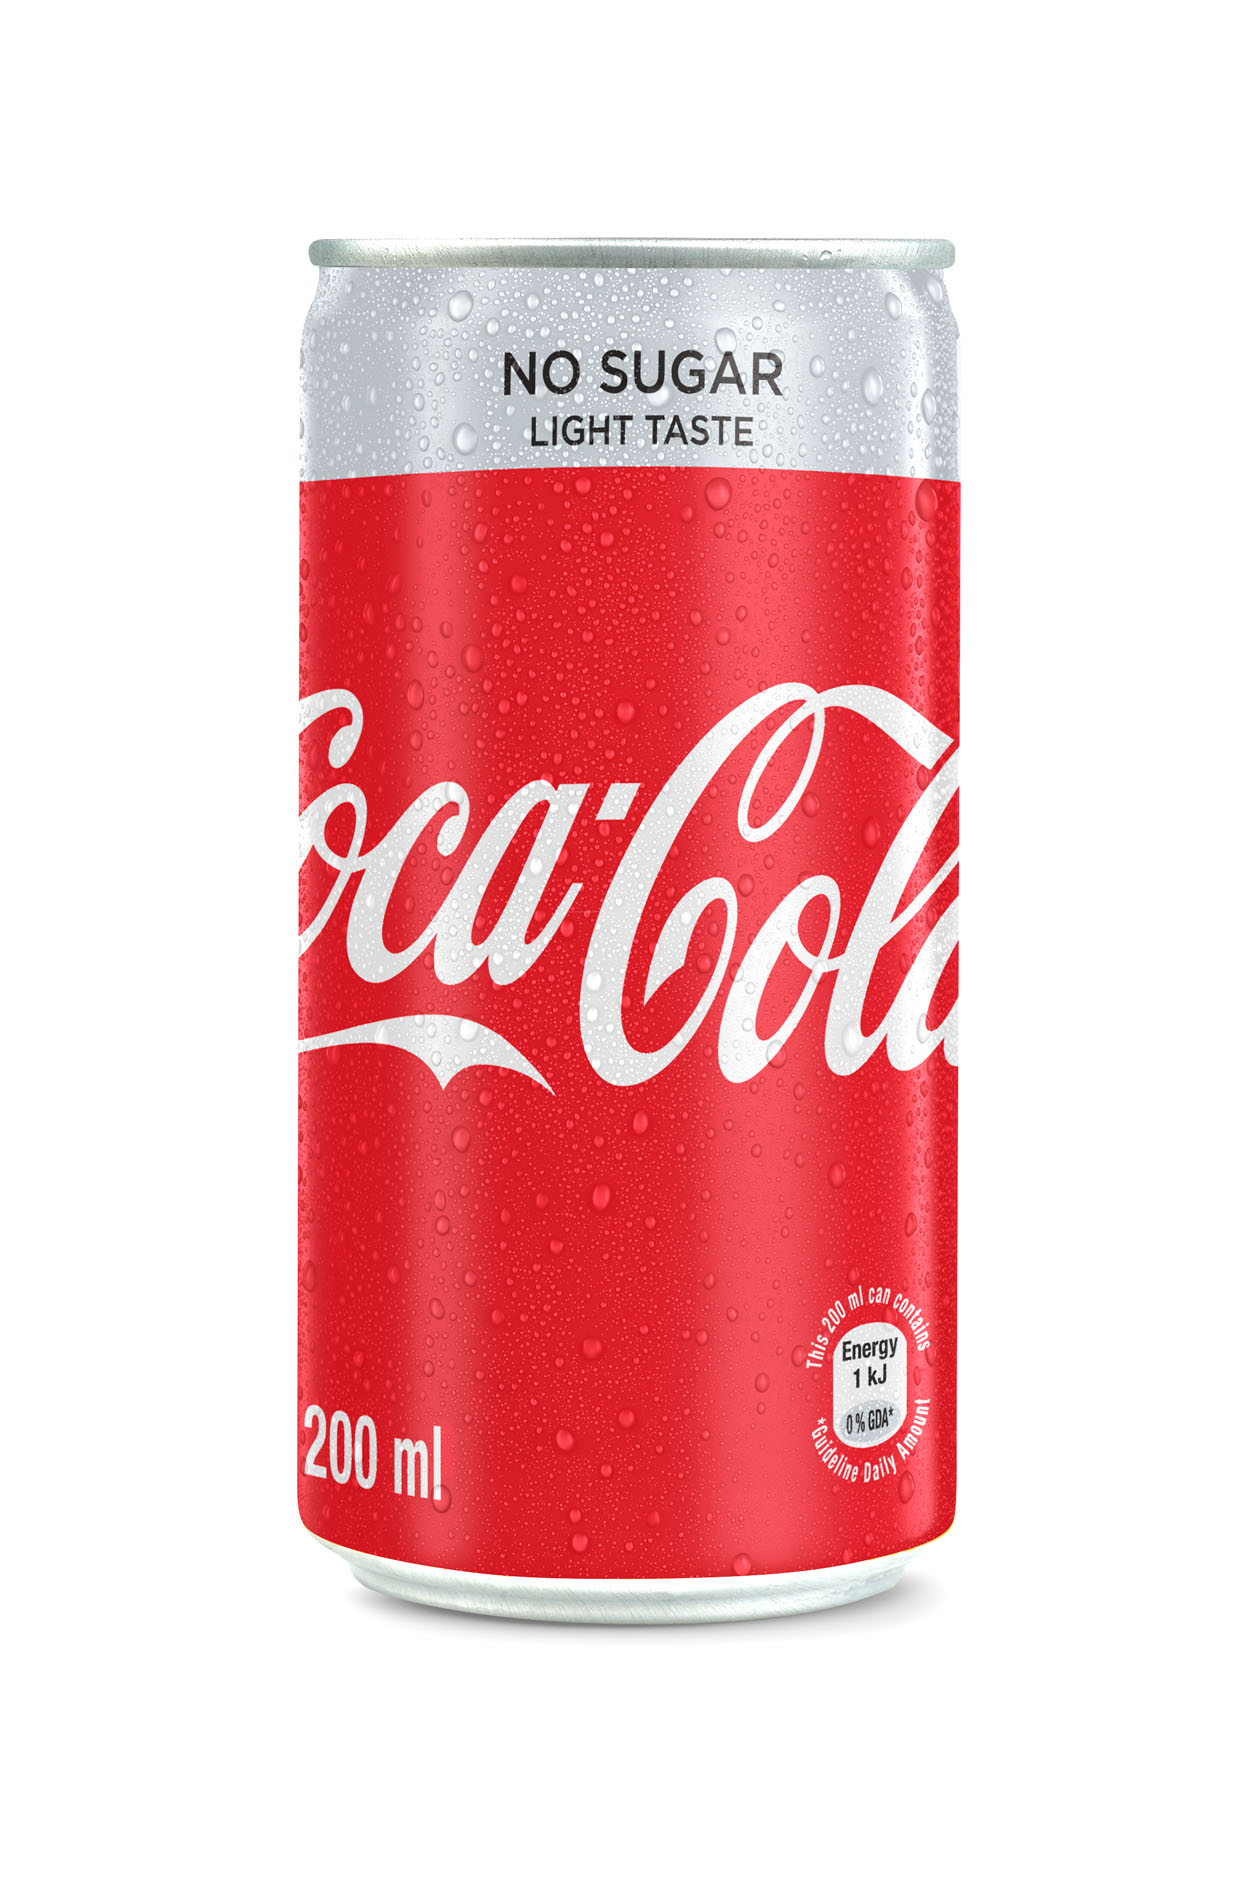 Coca-Cola No Sugar Light Taste 200ml